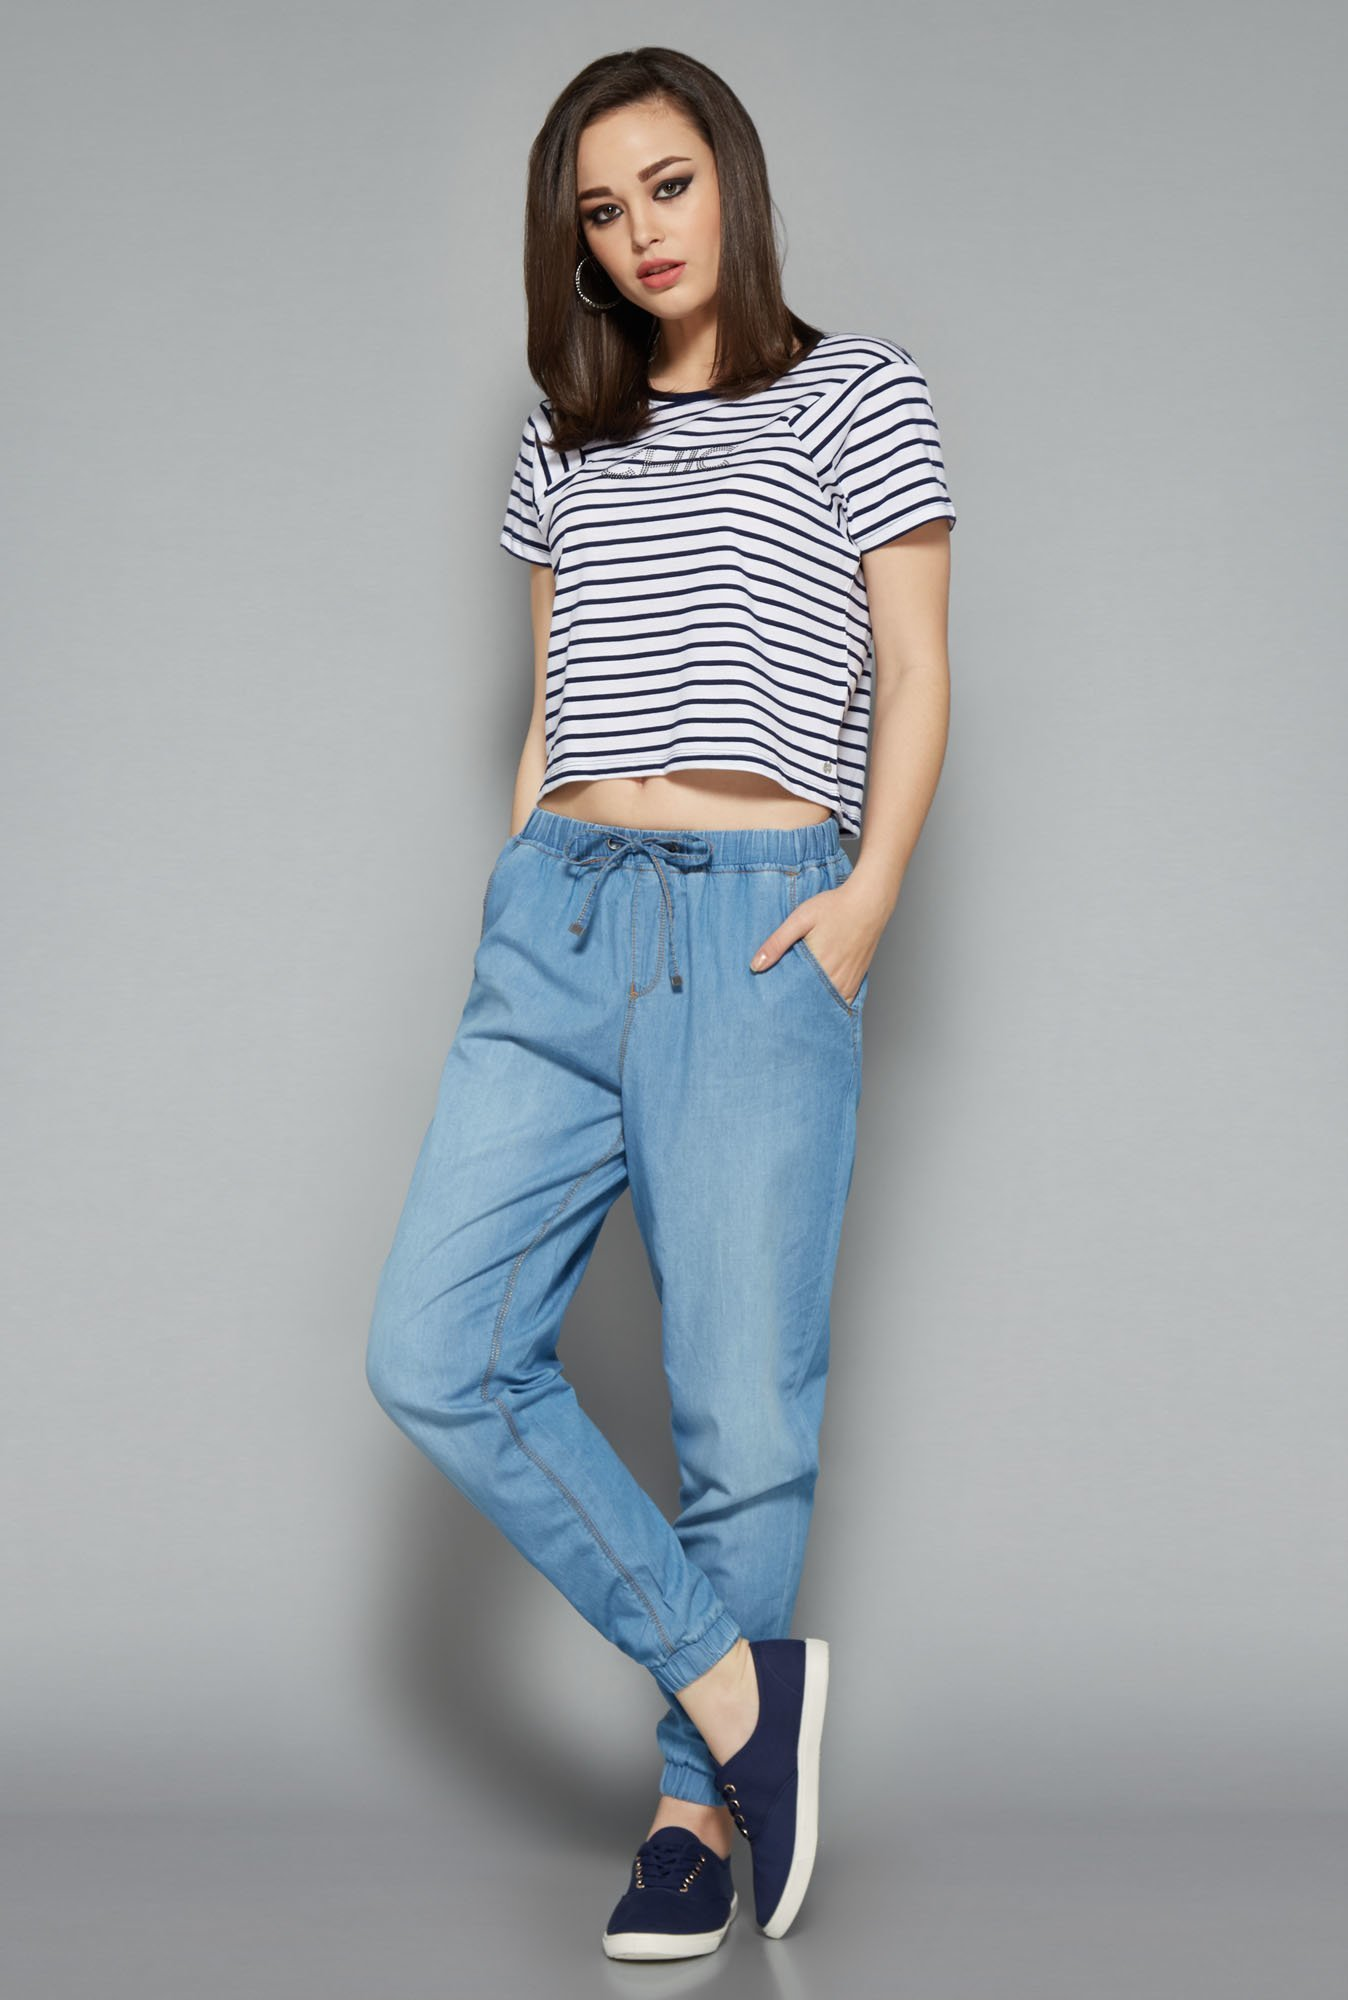 Nuon Navy & White Striped Top